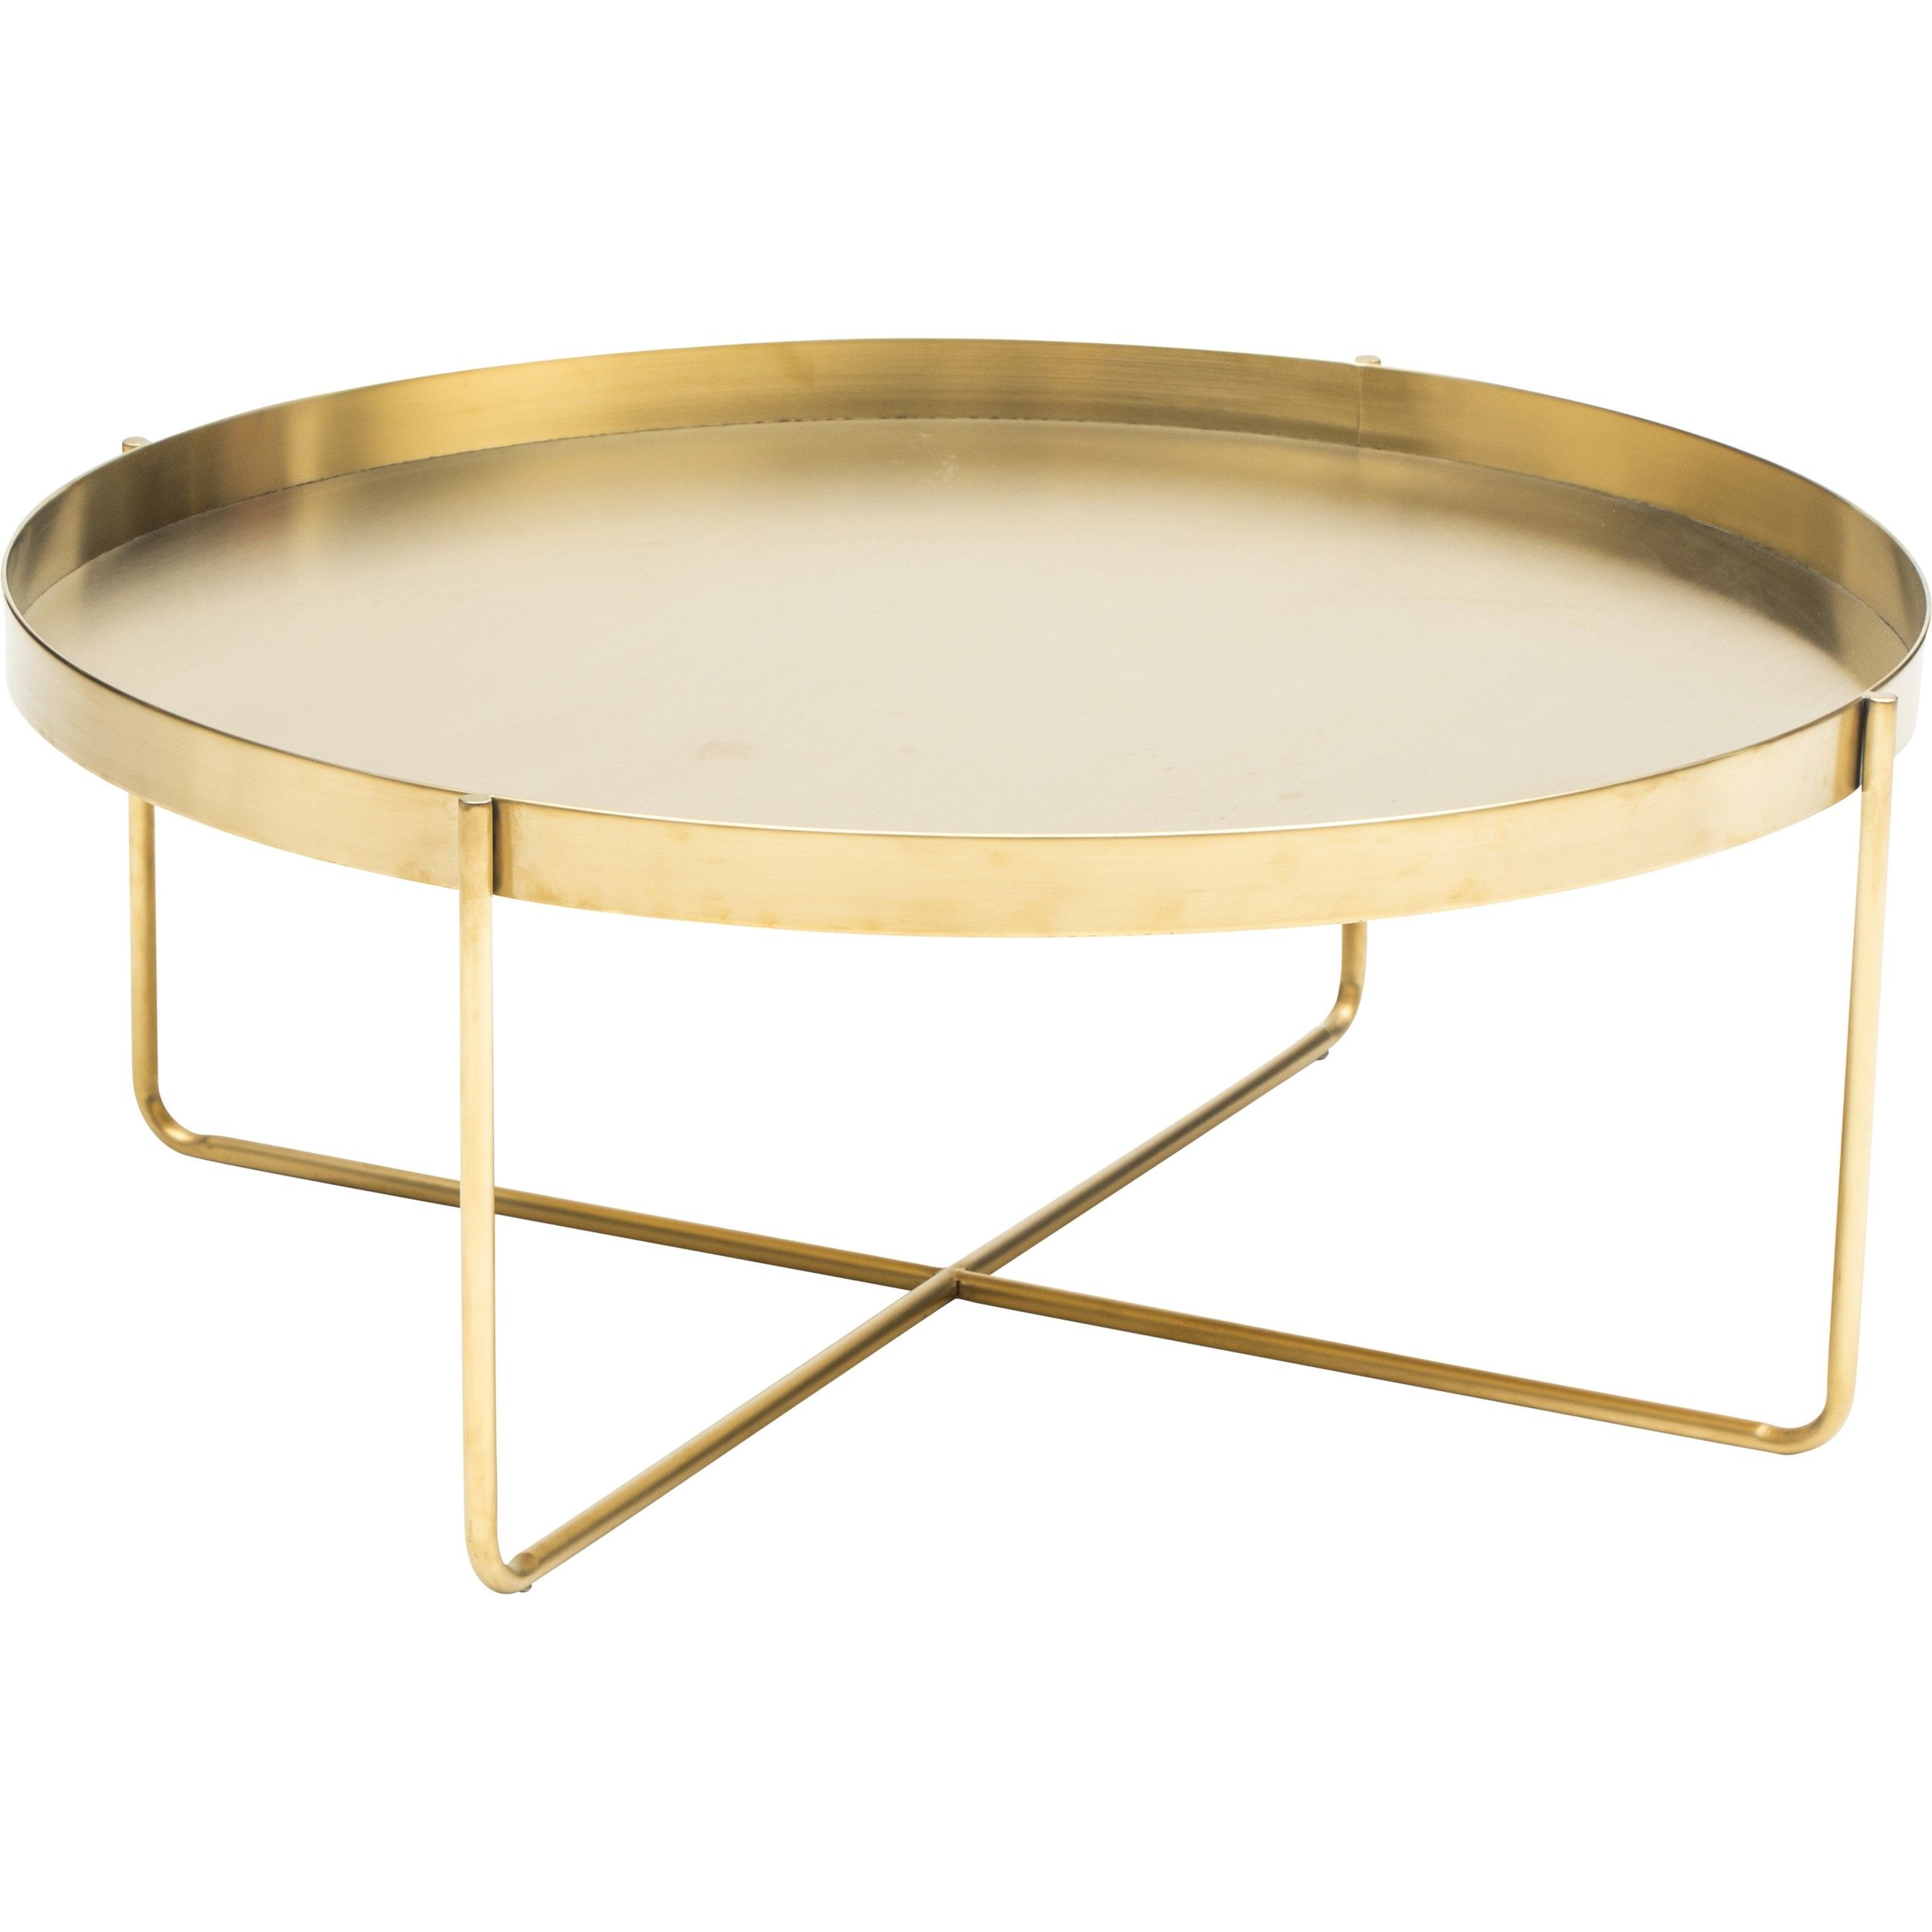 Gold Coffee Table Uk: Gaultier Oval Coffee Table, Gold